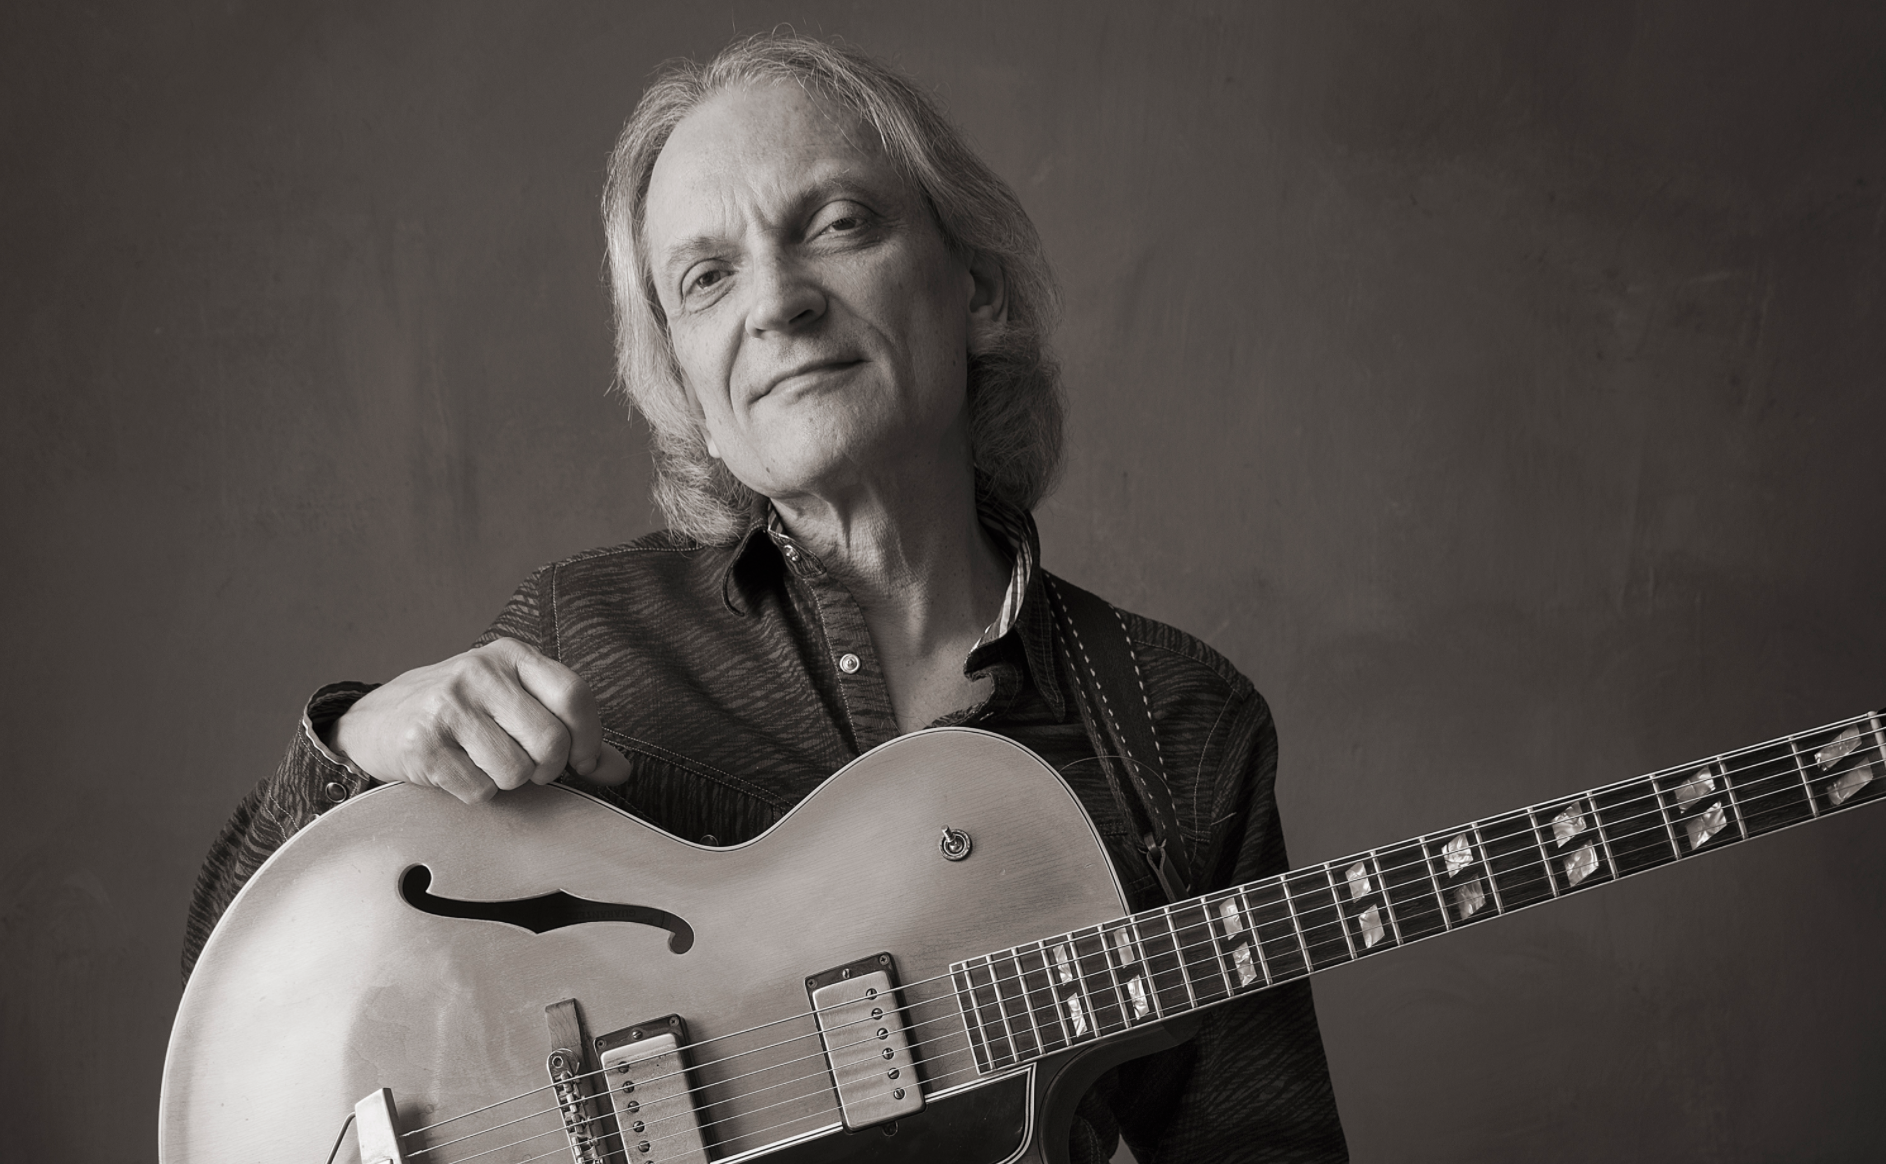 Sonny Landreth interview in Paris after the Jimmy Buffet shows